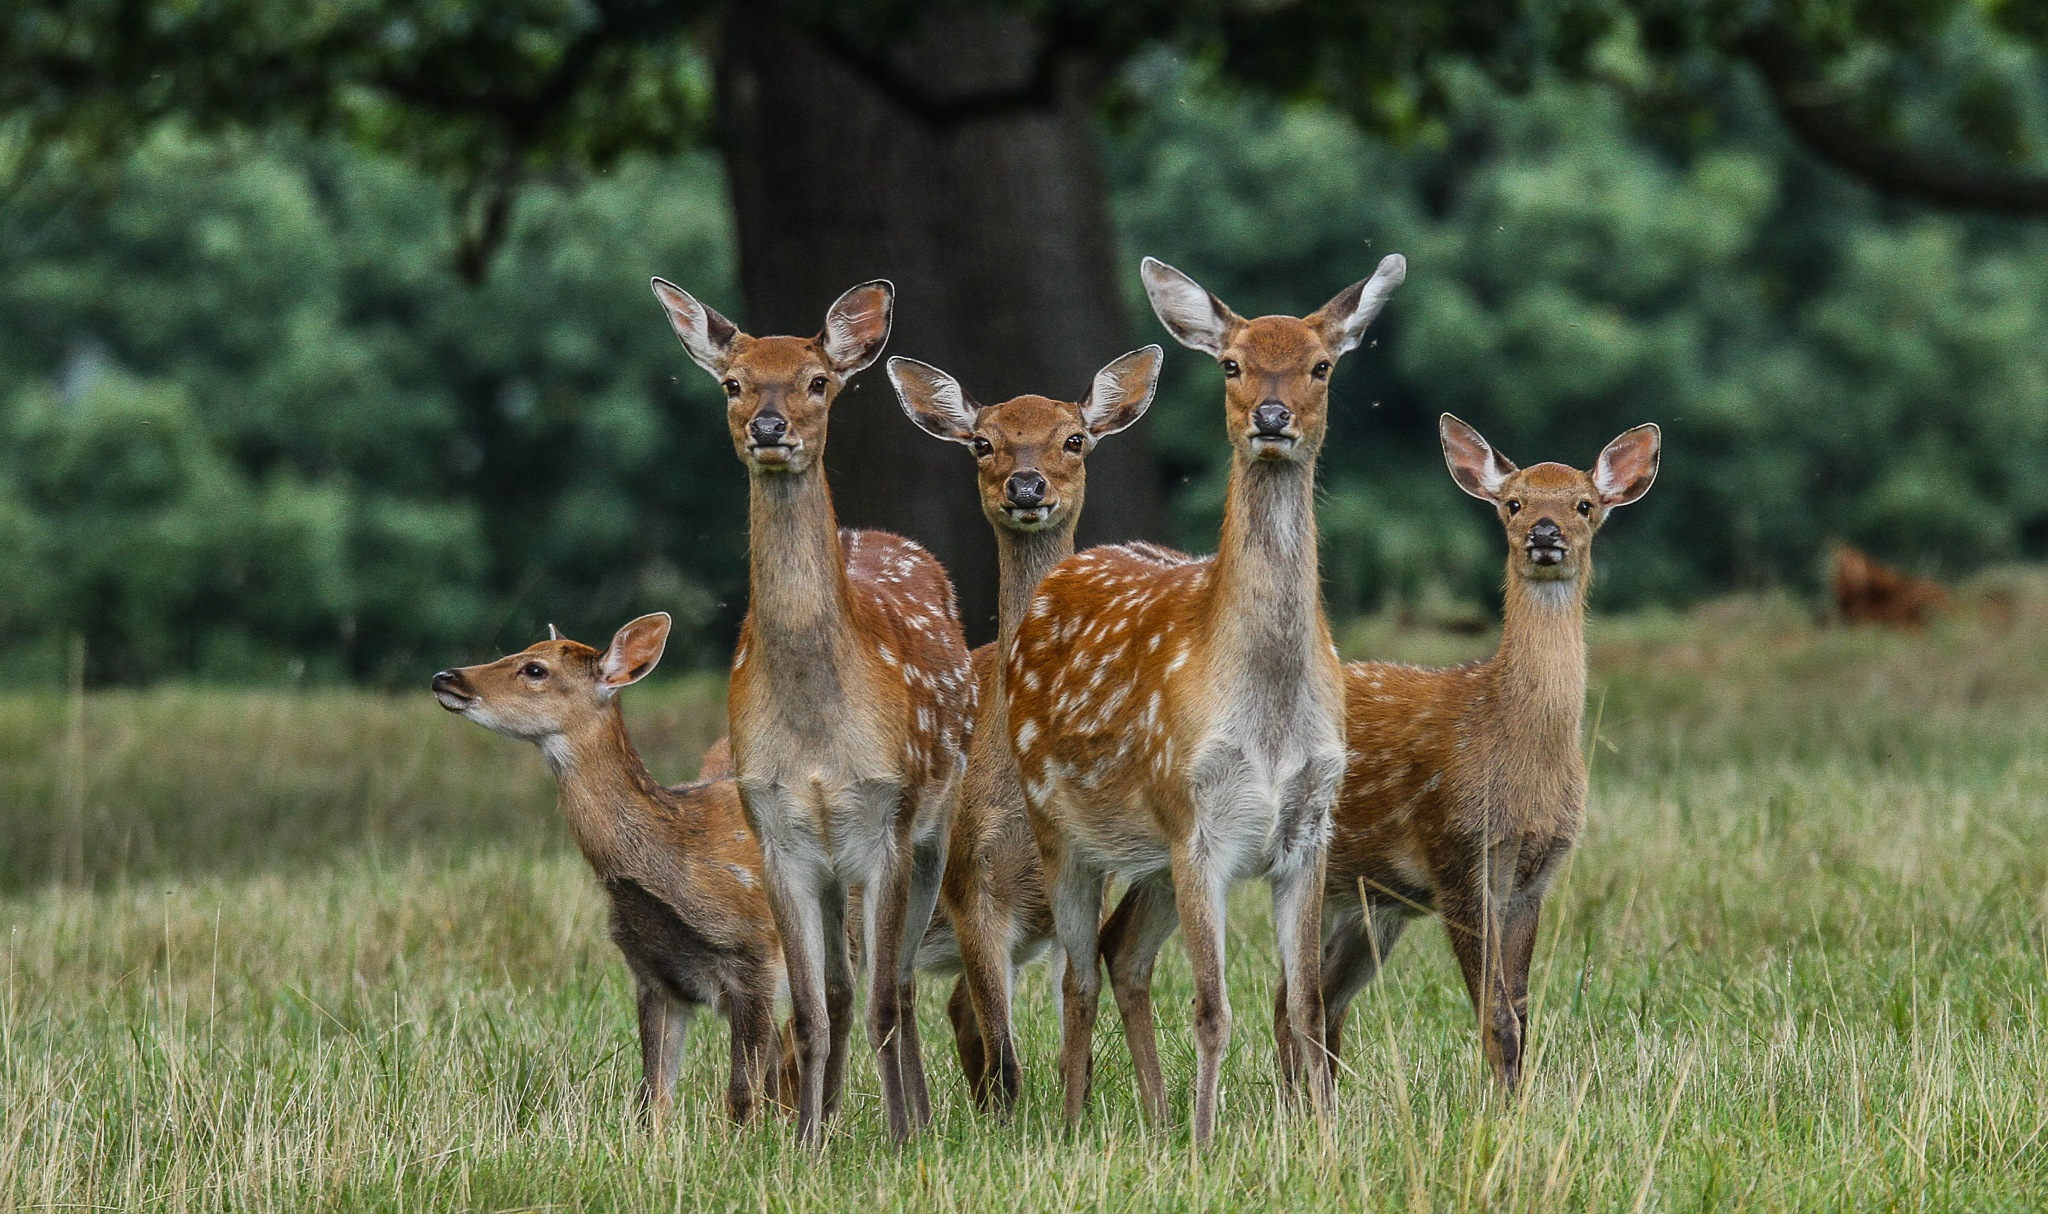 Deer family shot by garry-chisholm1